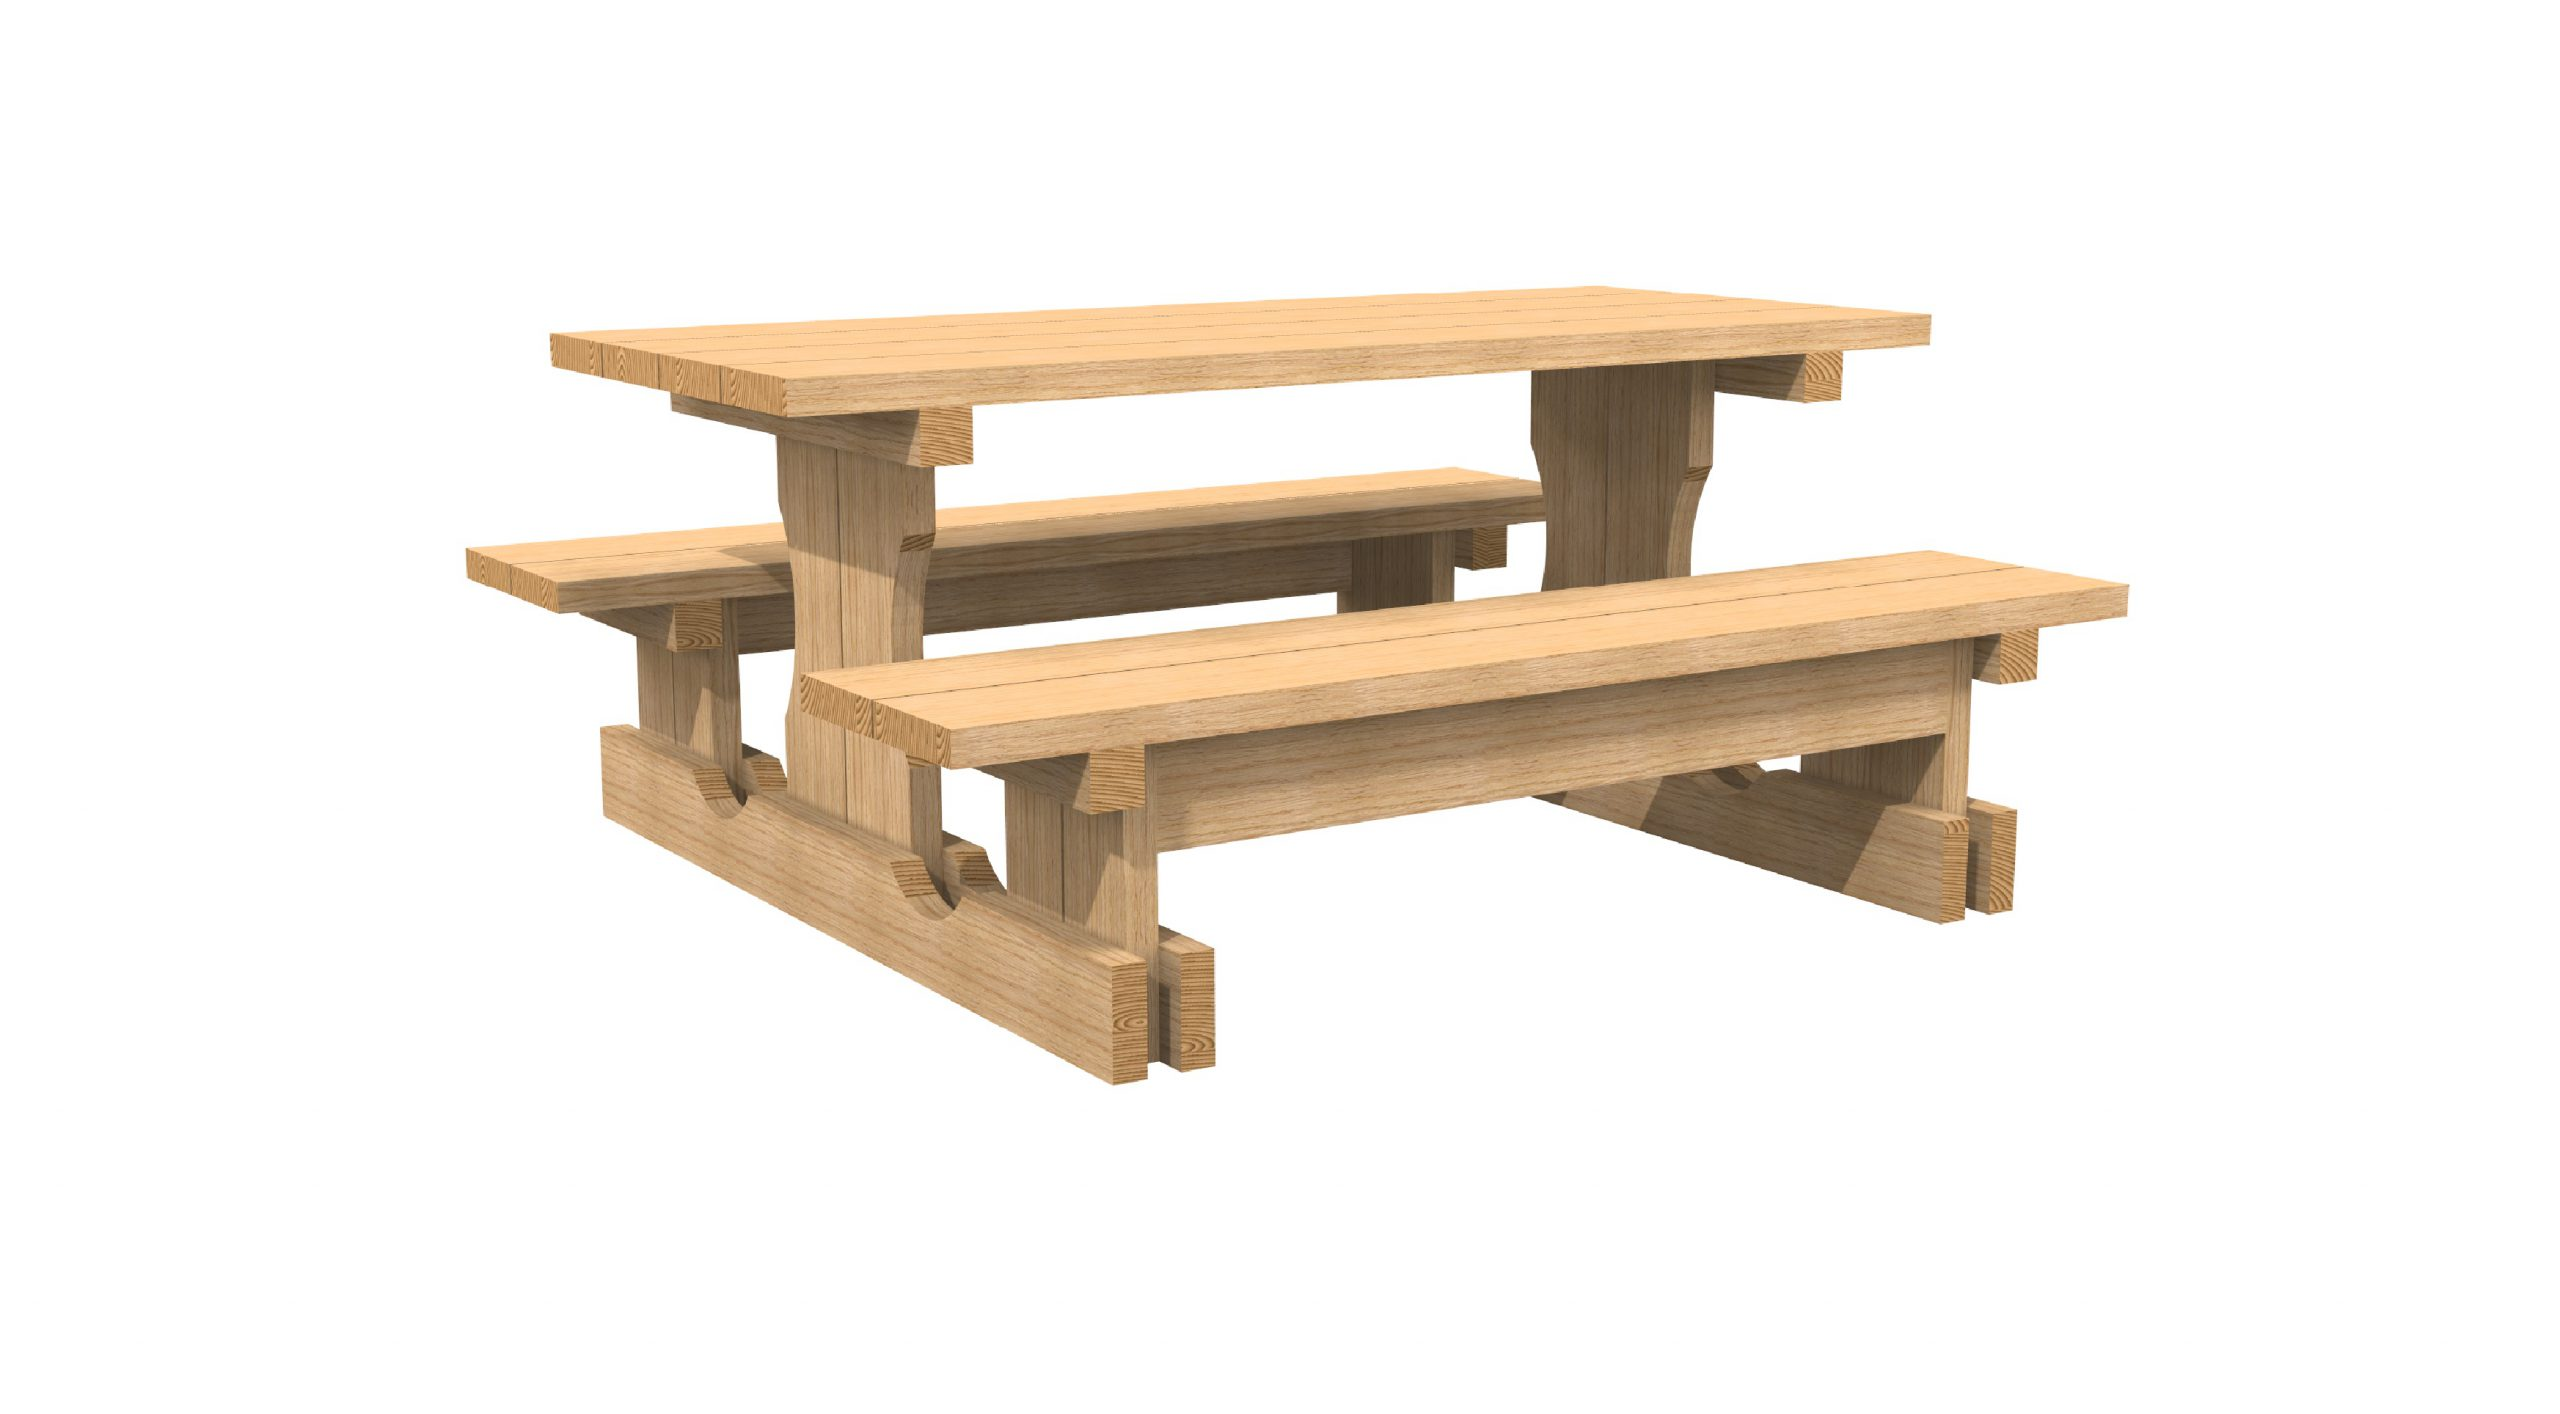 Coltman Bros Picnic table